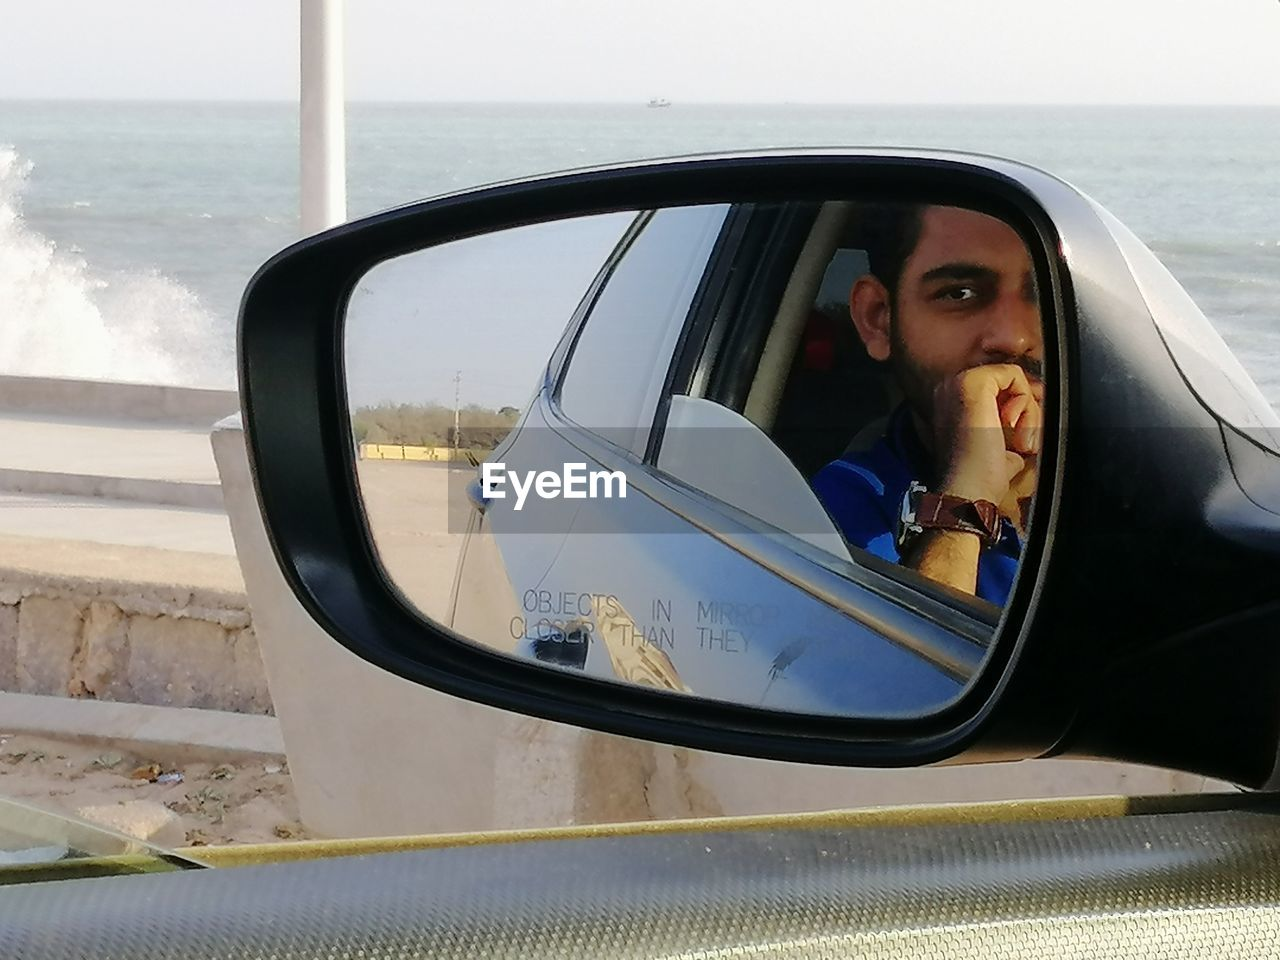 PORTRAIT OF MAN WITH REFLECTION ON MIRROR